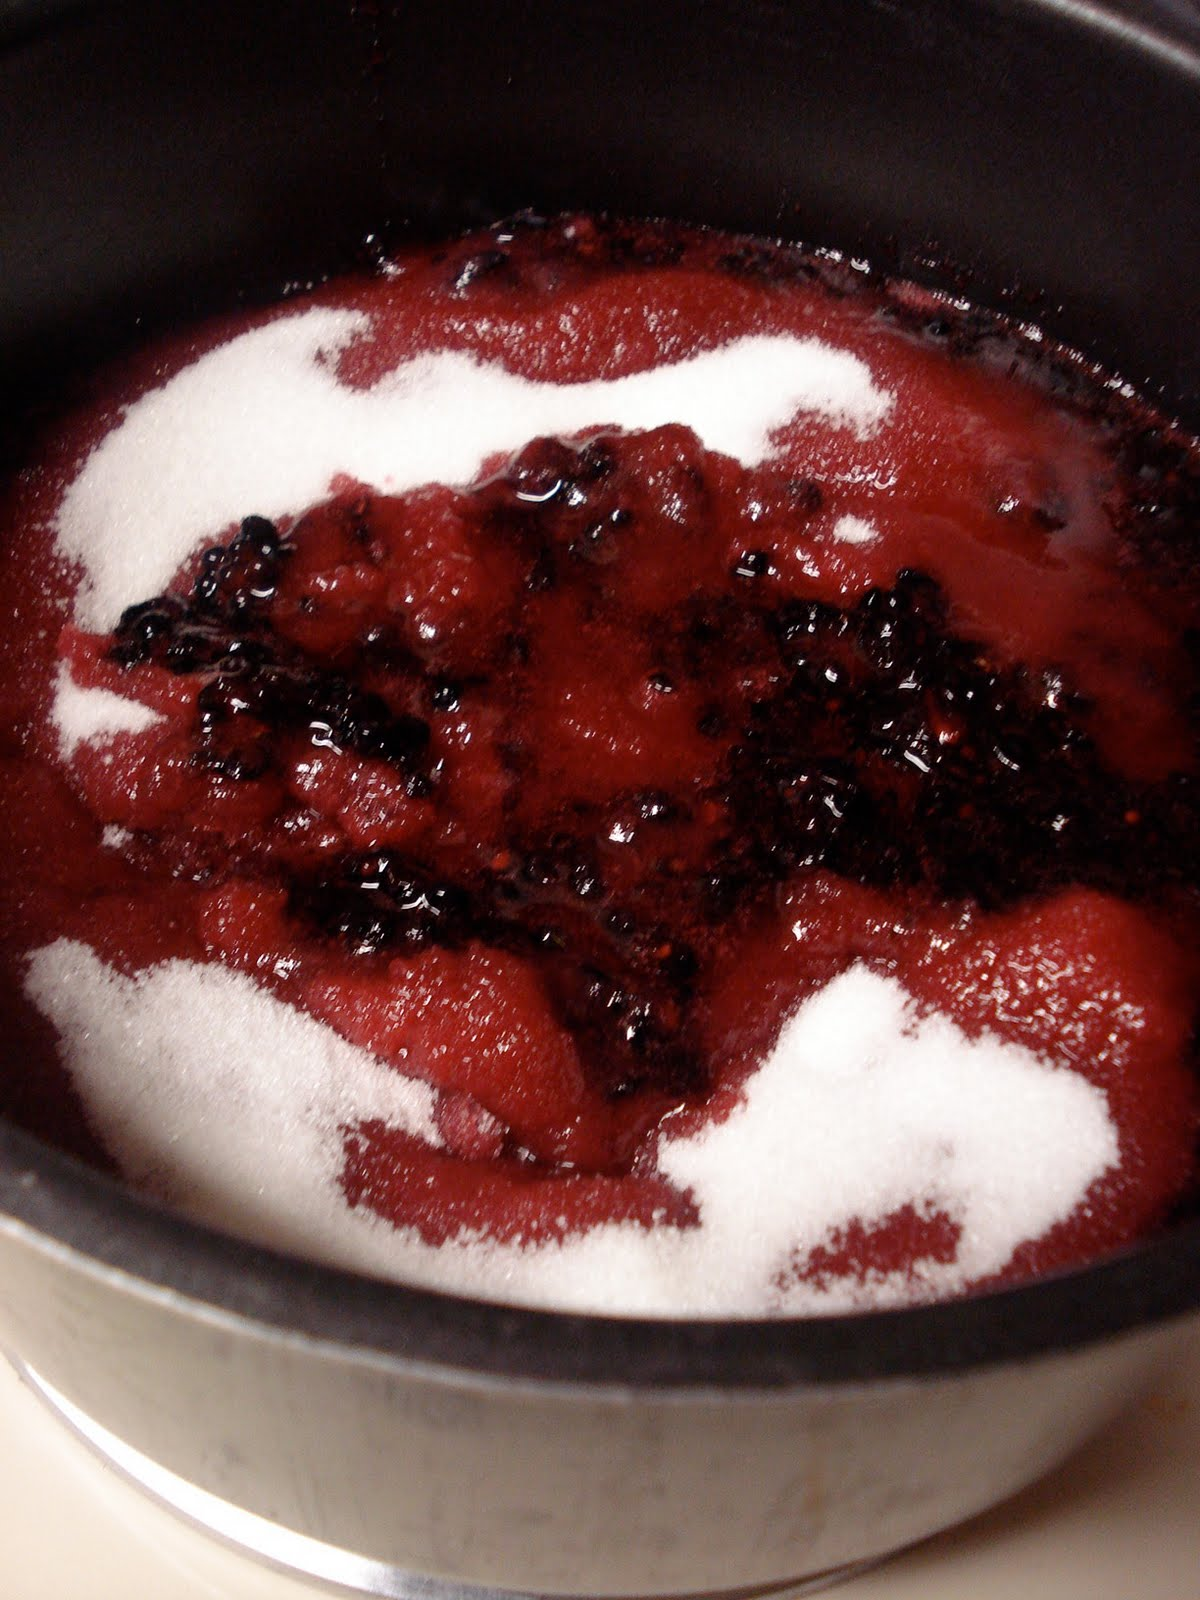 swEEts by e: Blackberry Blueberry Port Jam